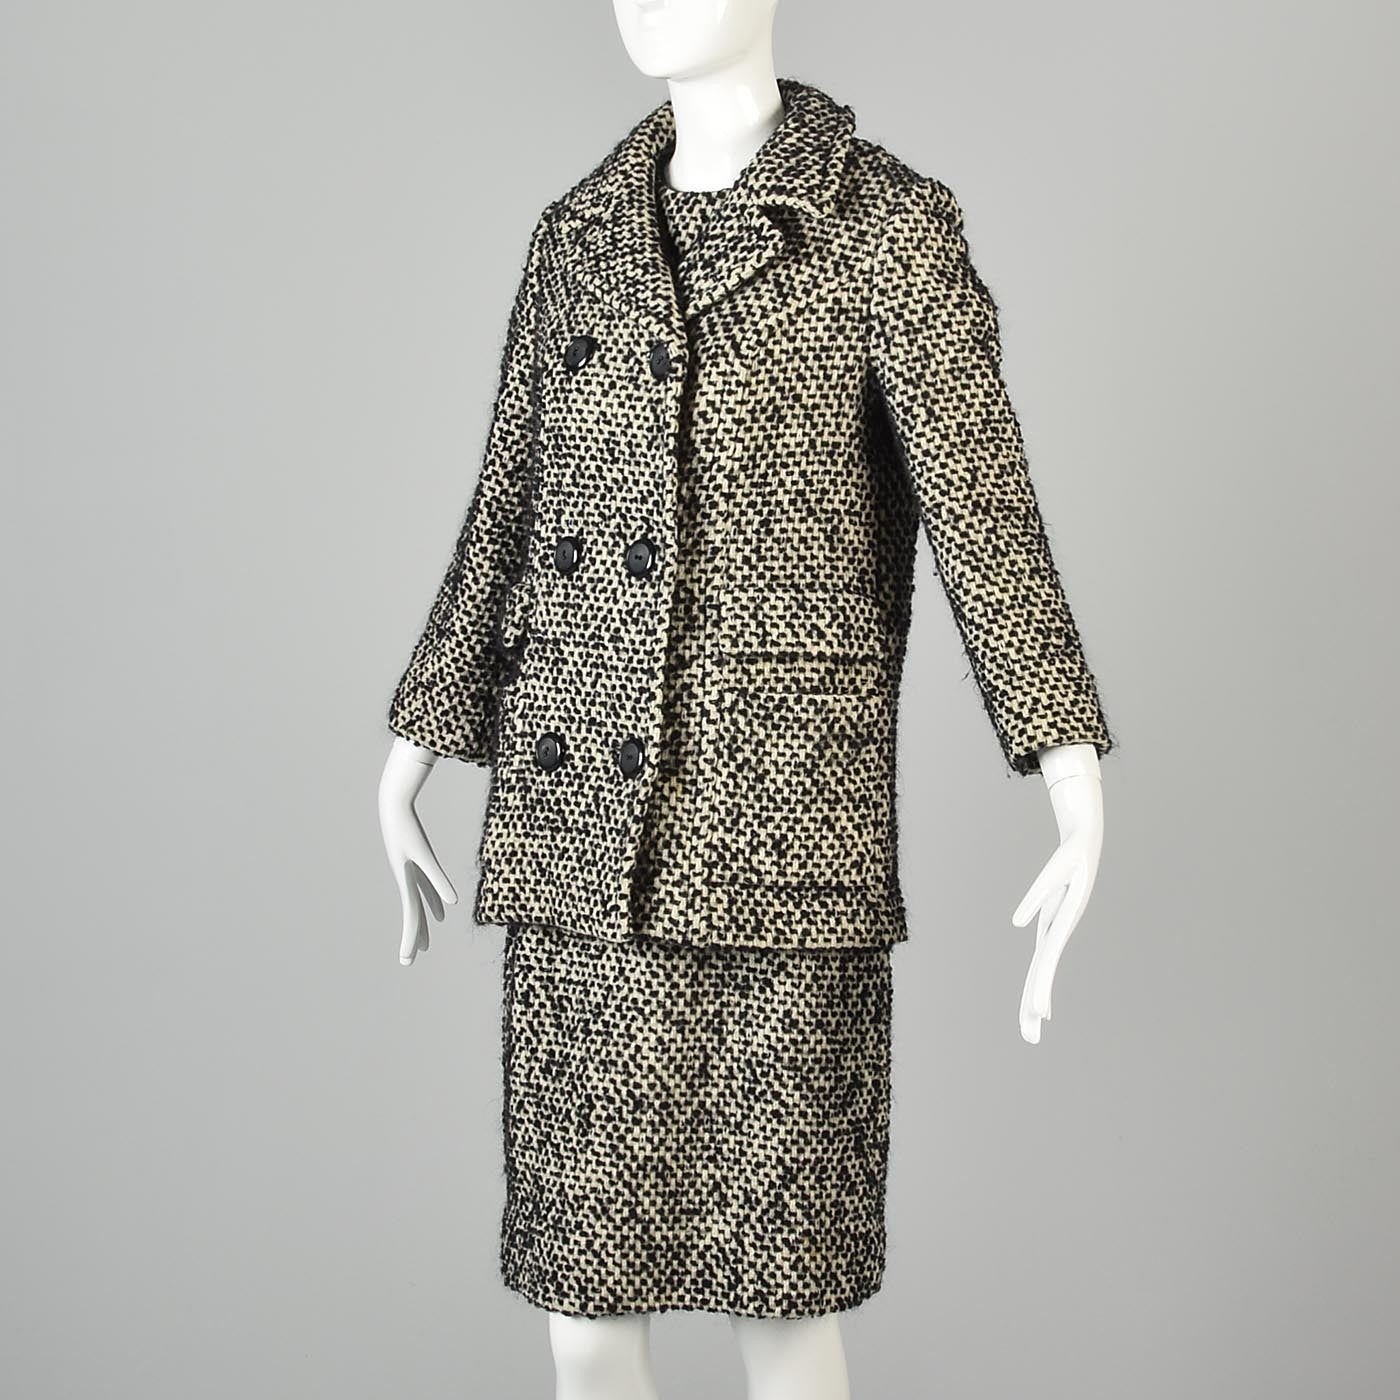 1960s Four Piece Tweed Set with Top, Skirt, Jacket, and Coat